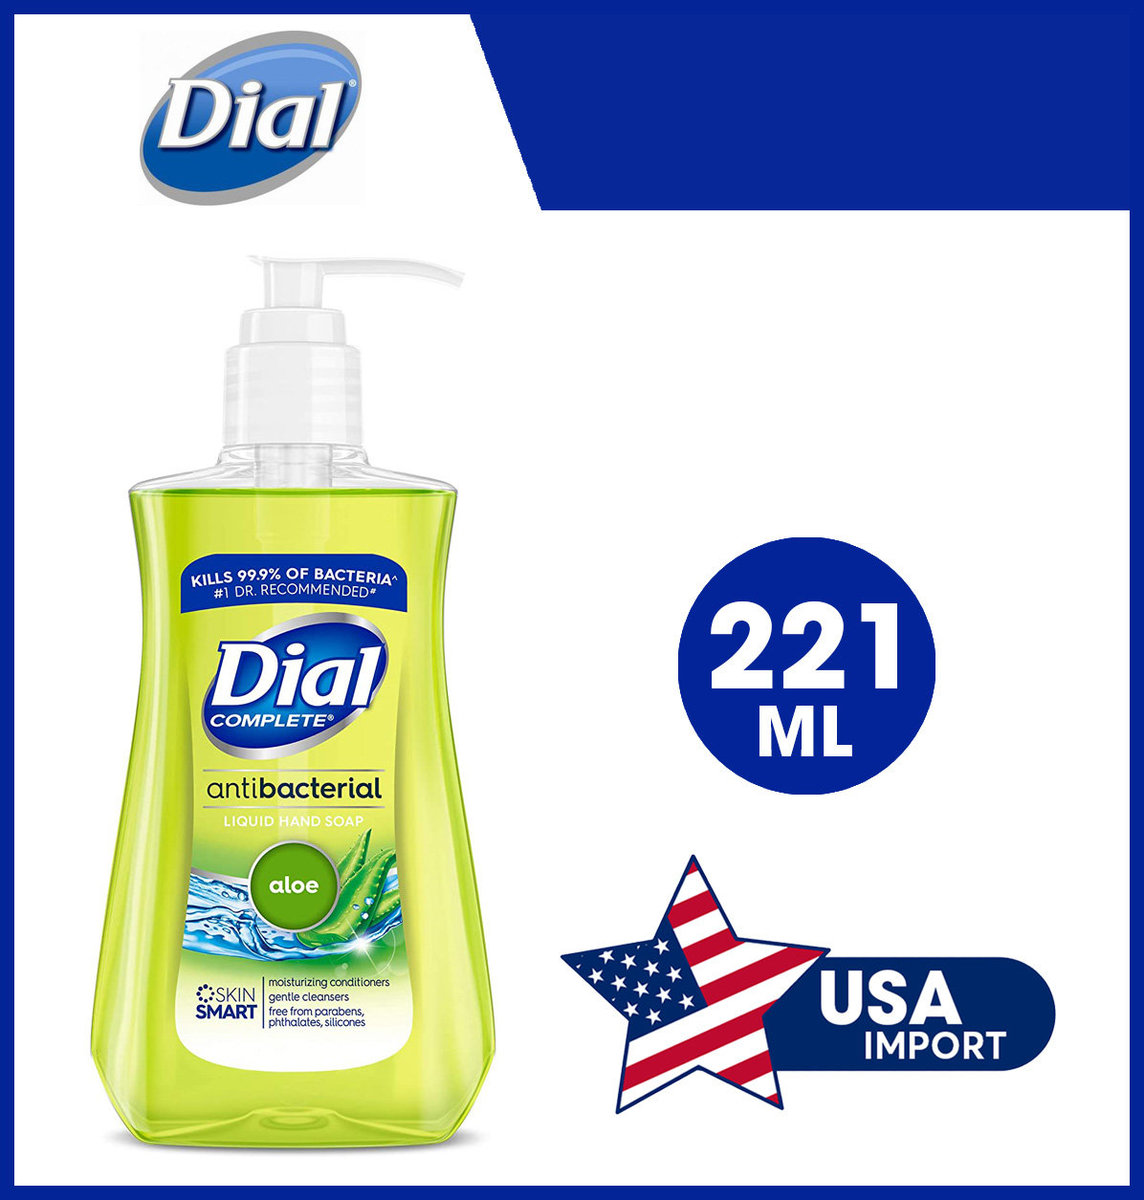 Antibacterial Liquid Hand Soap, Aloe, 221 ML, USA Parallel Import